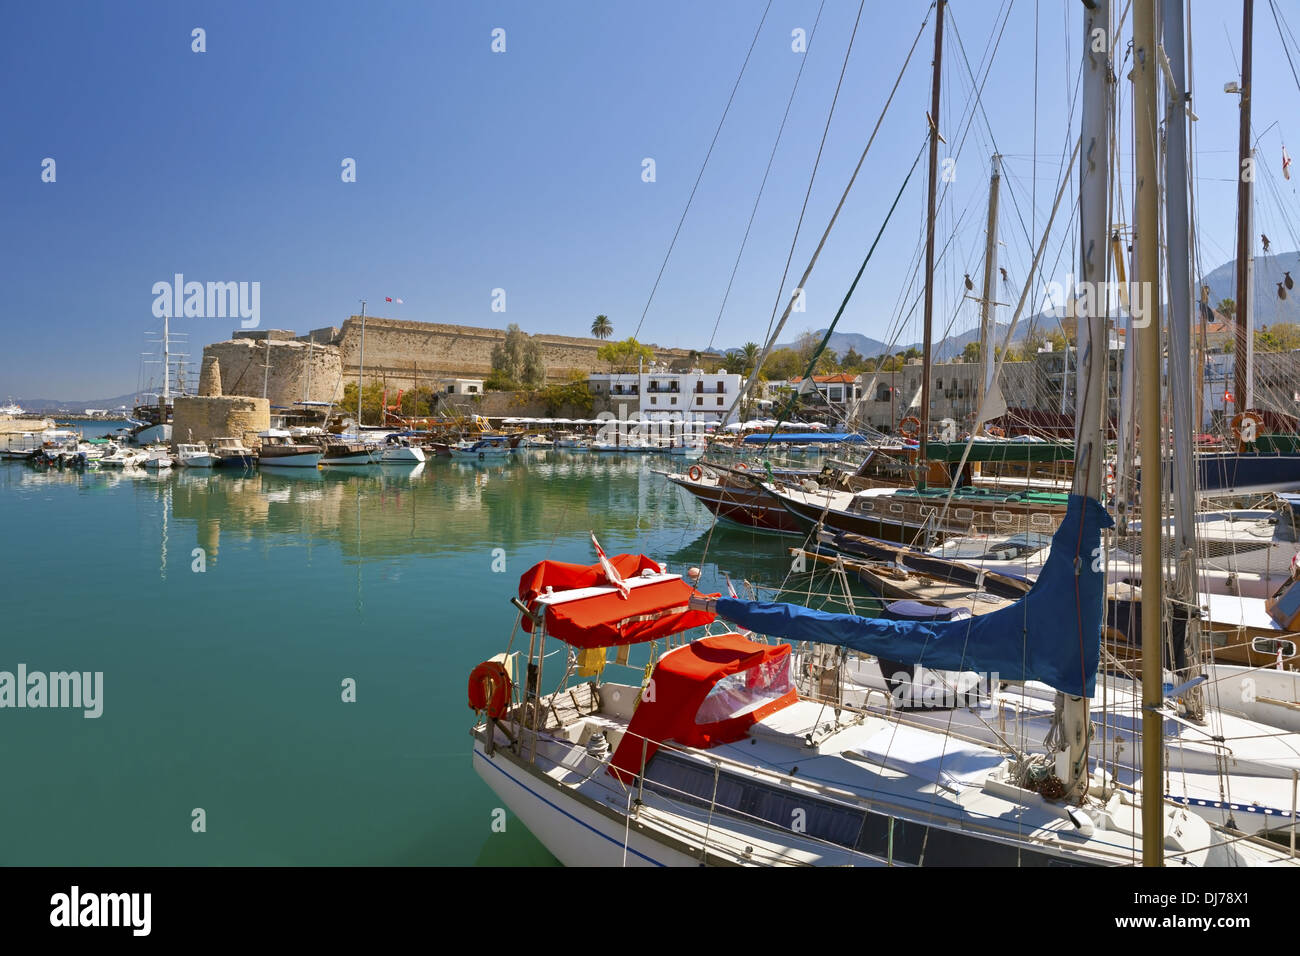 Old harbour and medieval castle in Kyrenia, Cyprus. - Stock Image